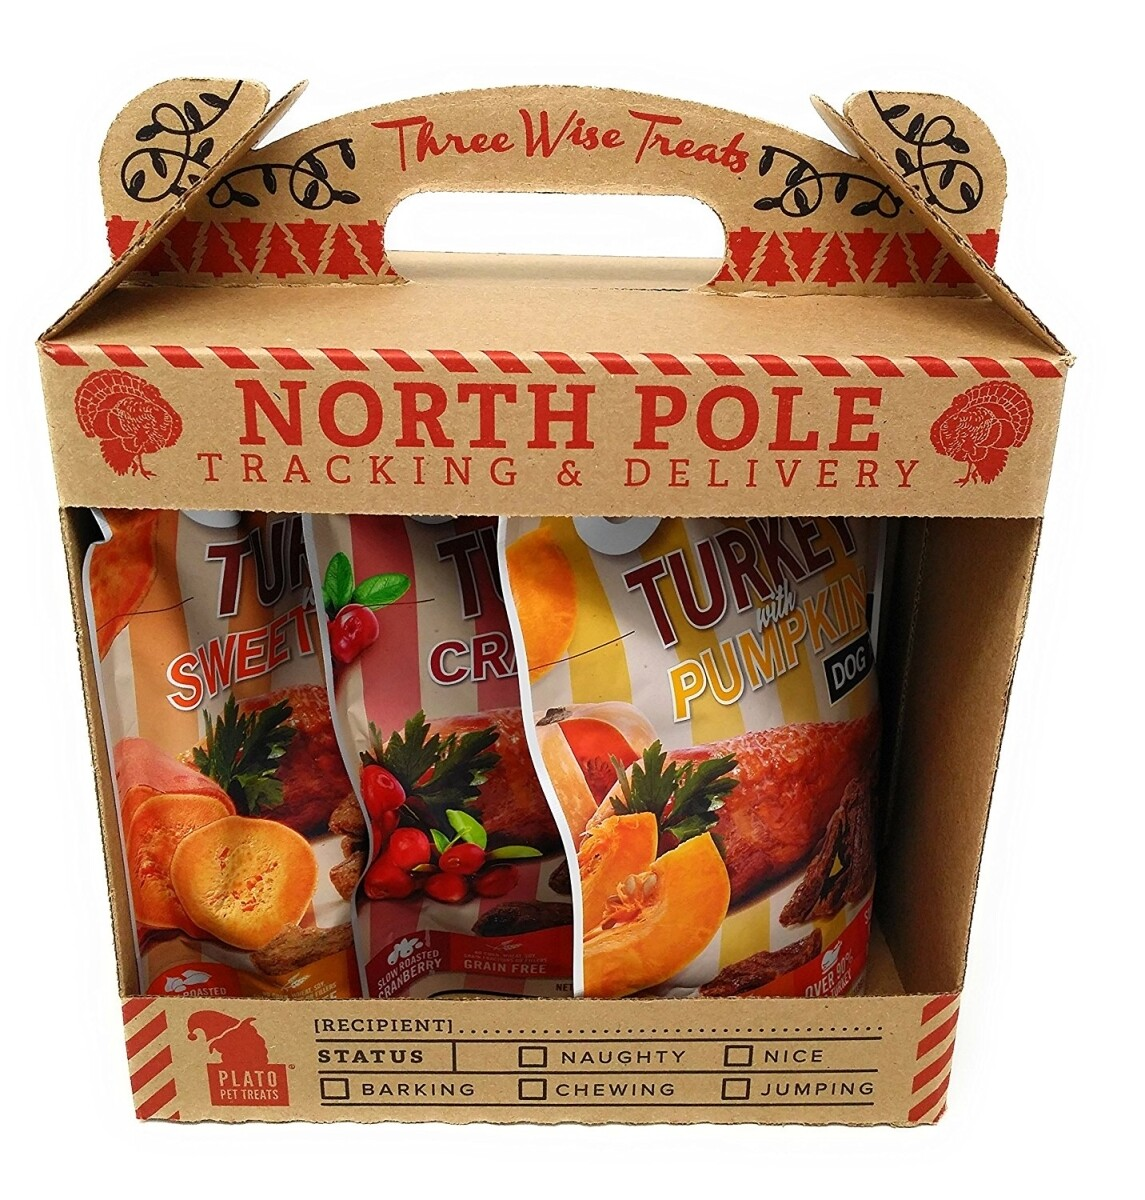 PLATO NORTH POLE TRACKING & DELIVERY 3 Treat Pack (03/19) (A.H2/DT)